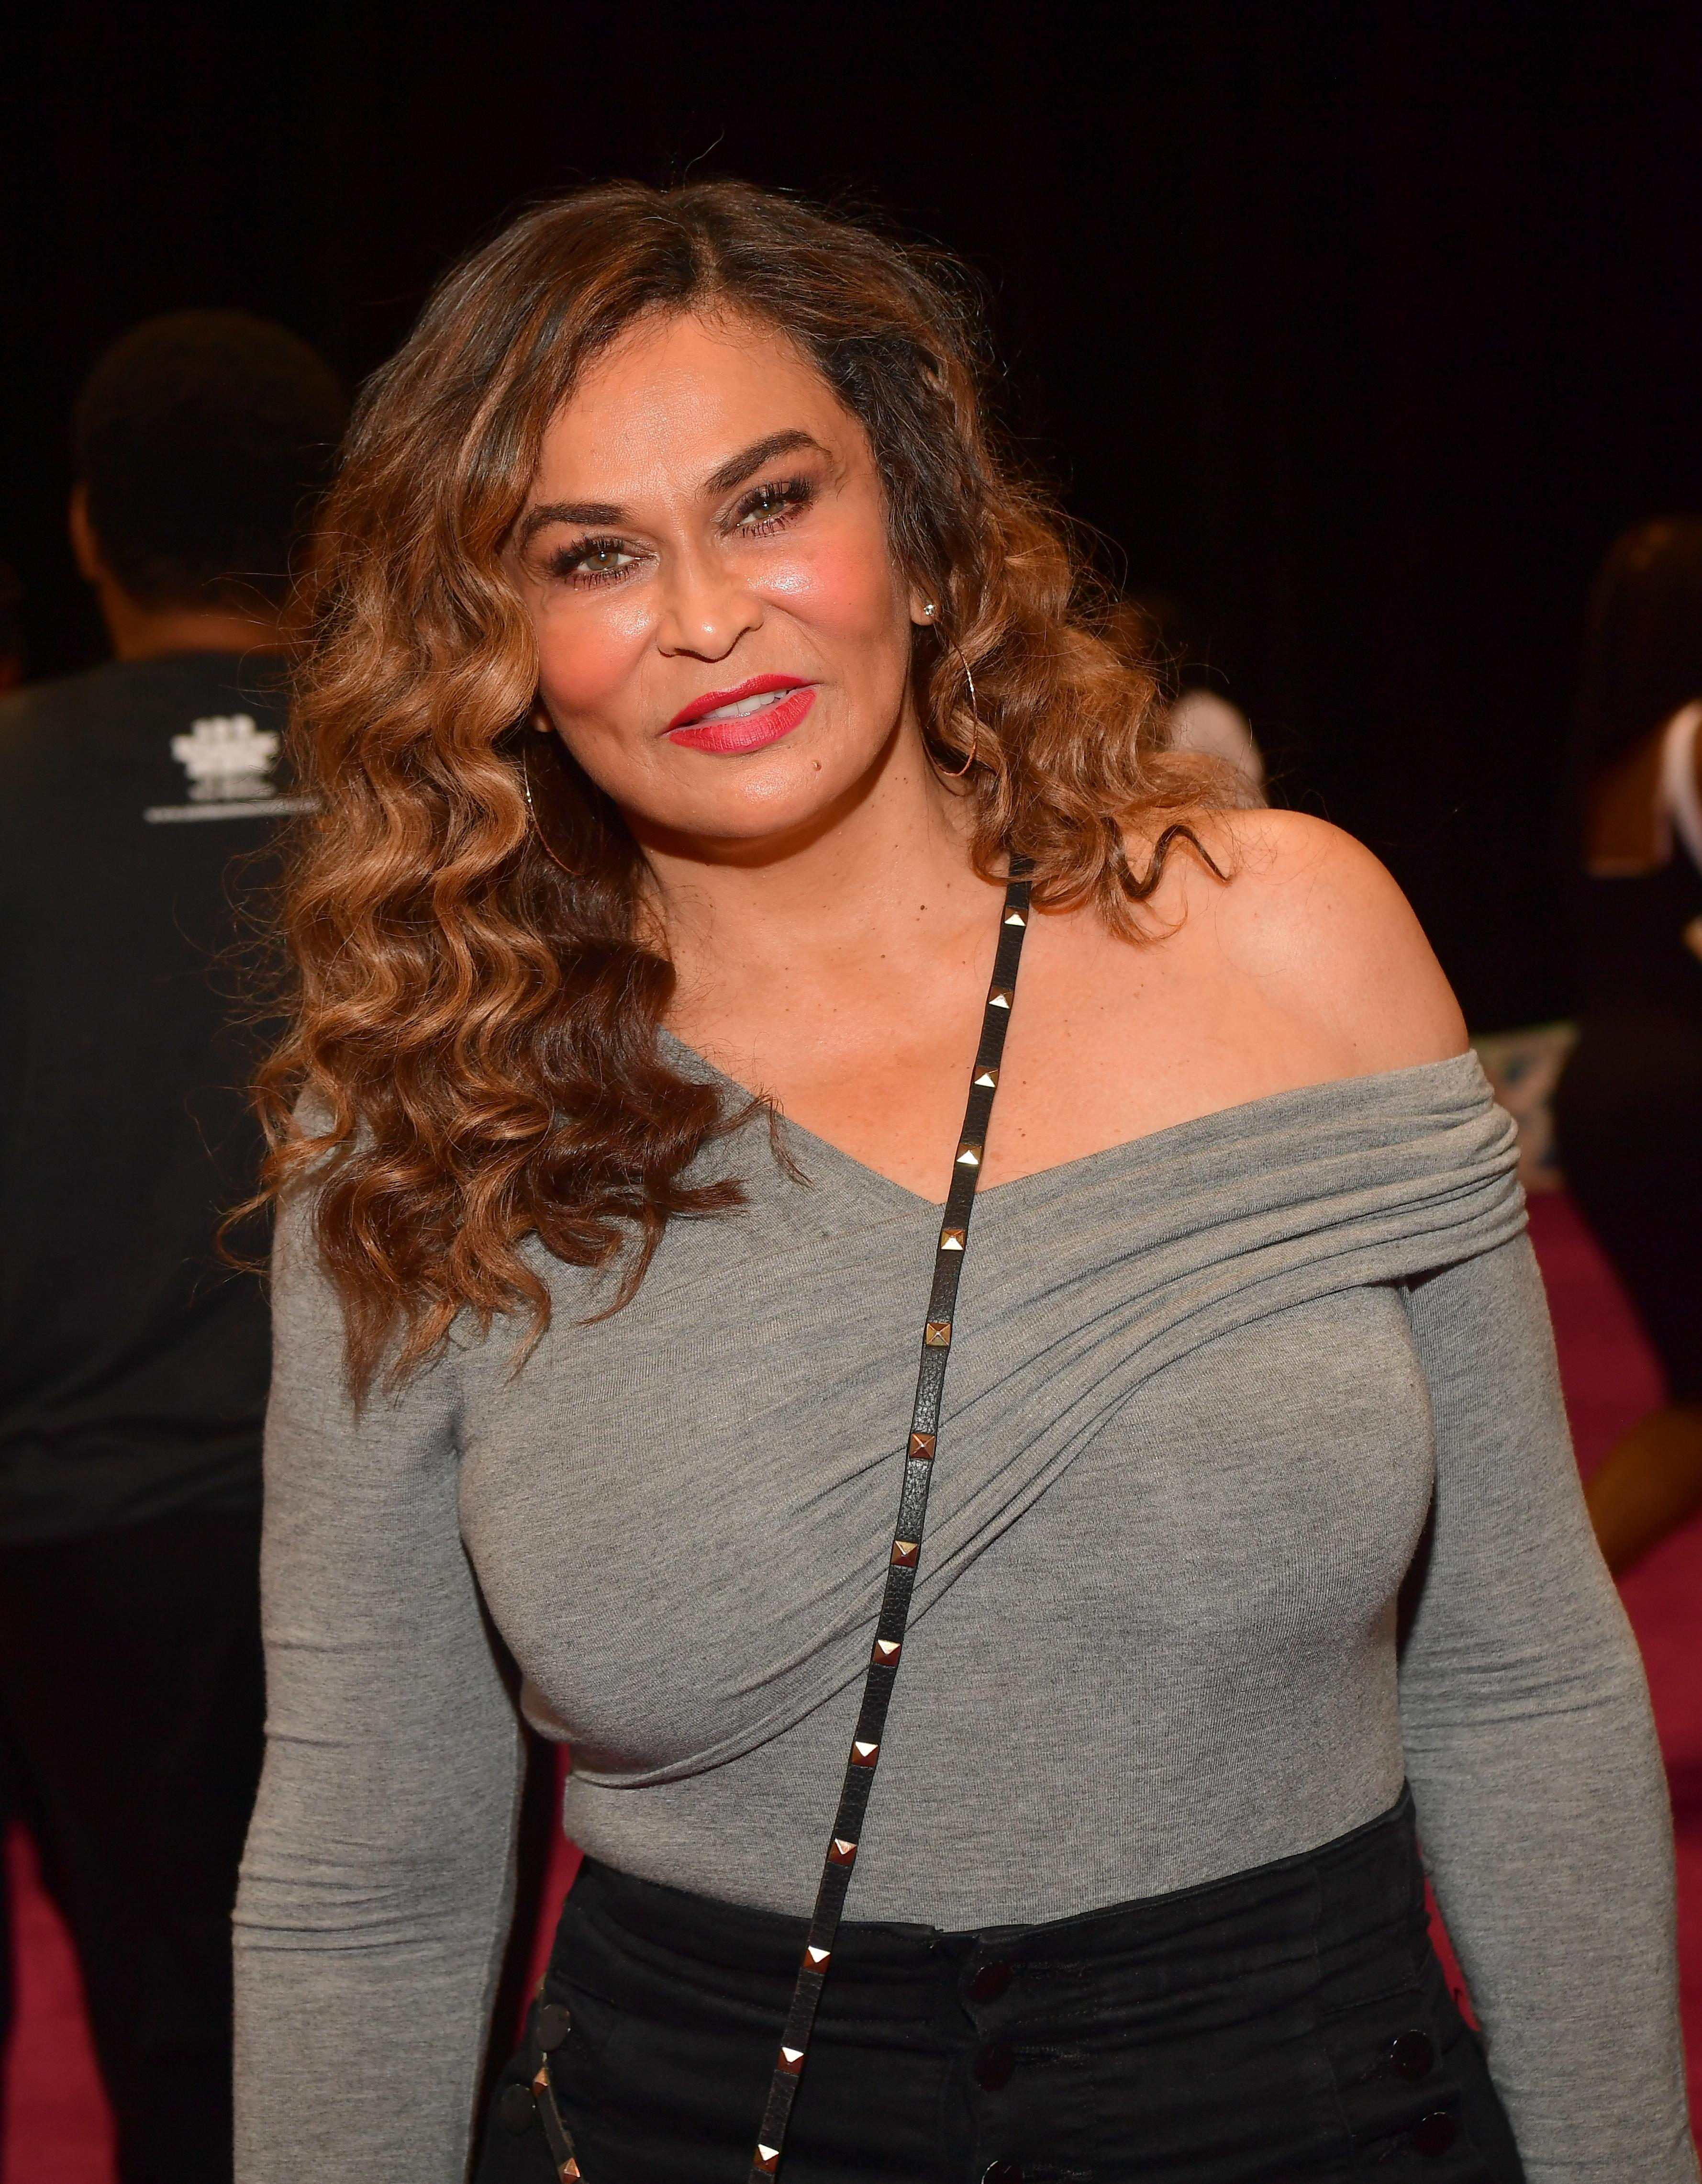 Tina Knowles says she 'would love' to design costumes for a rumored Destiny's Child reunion